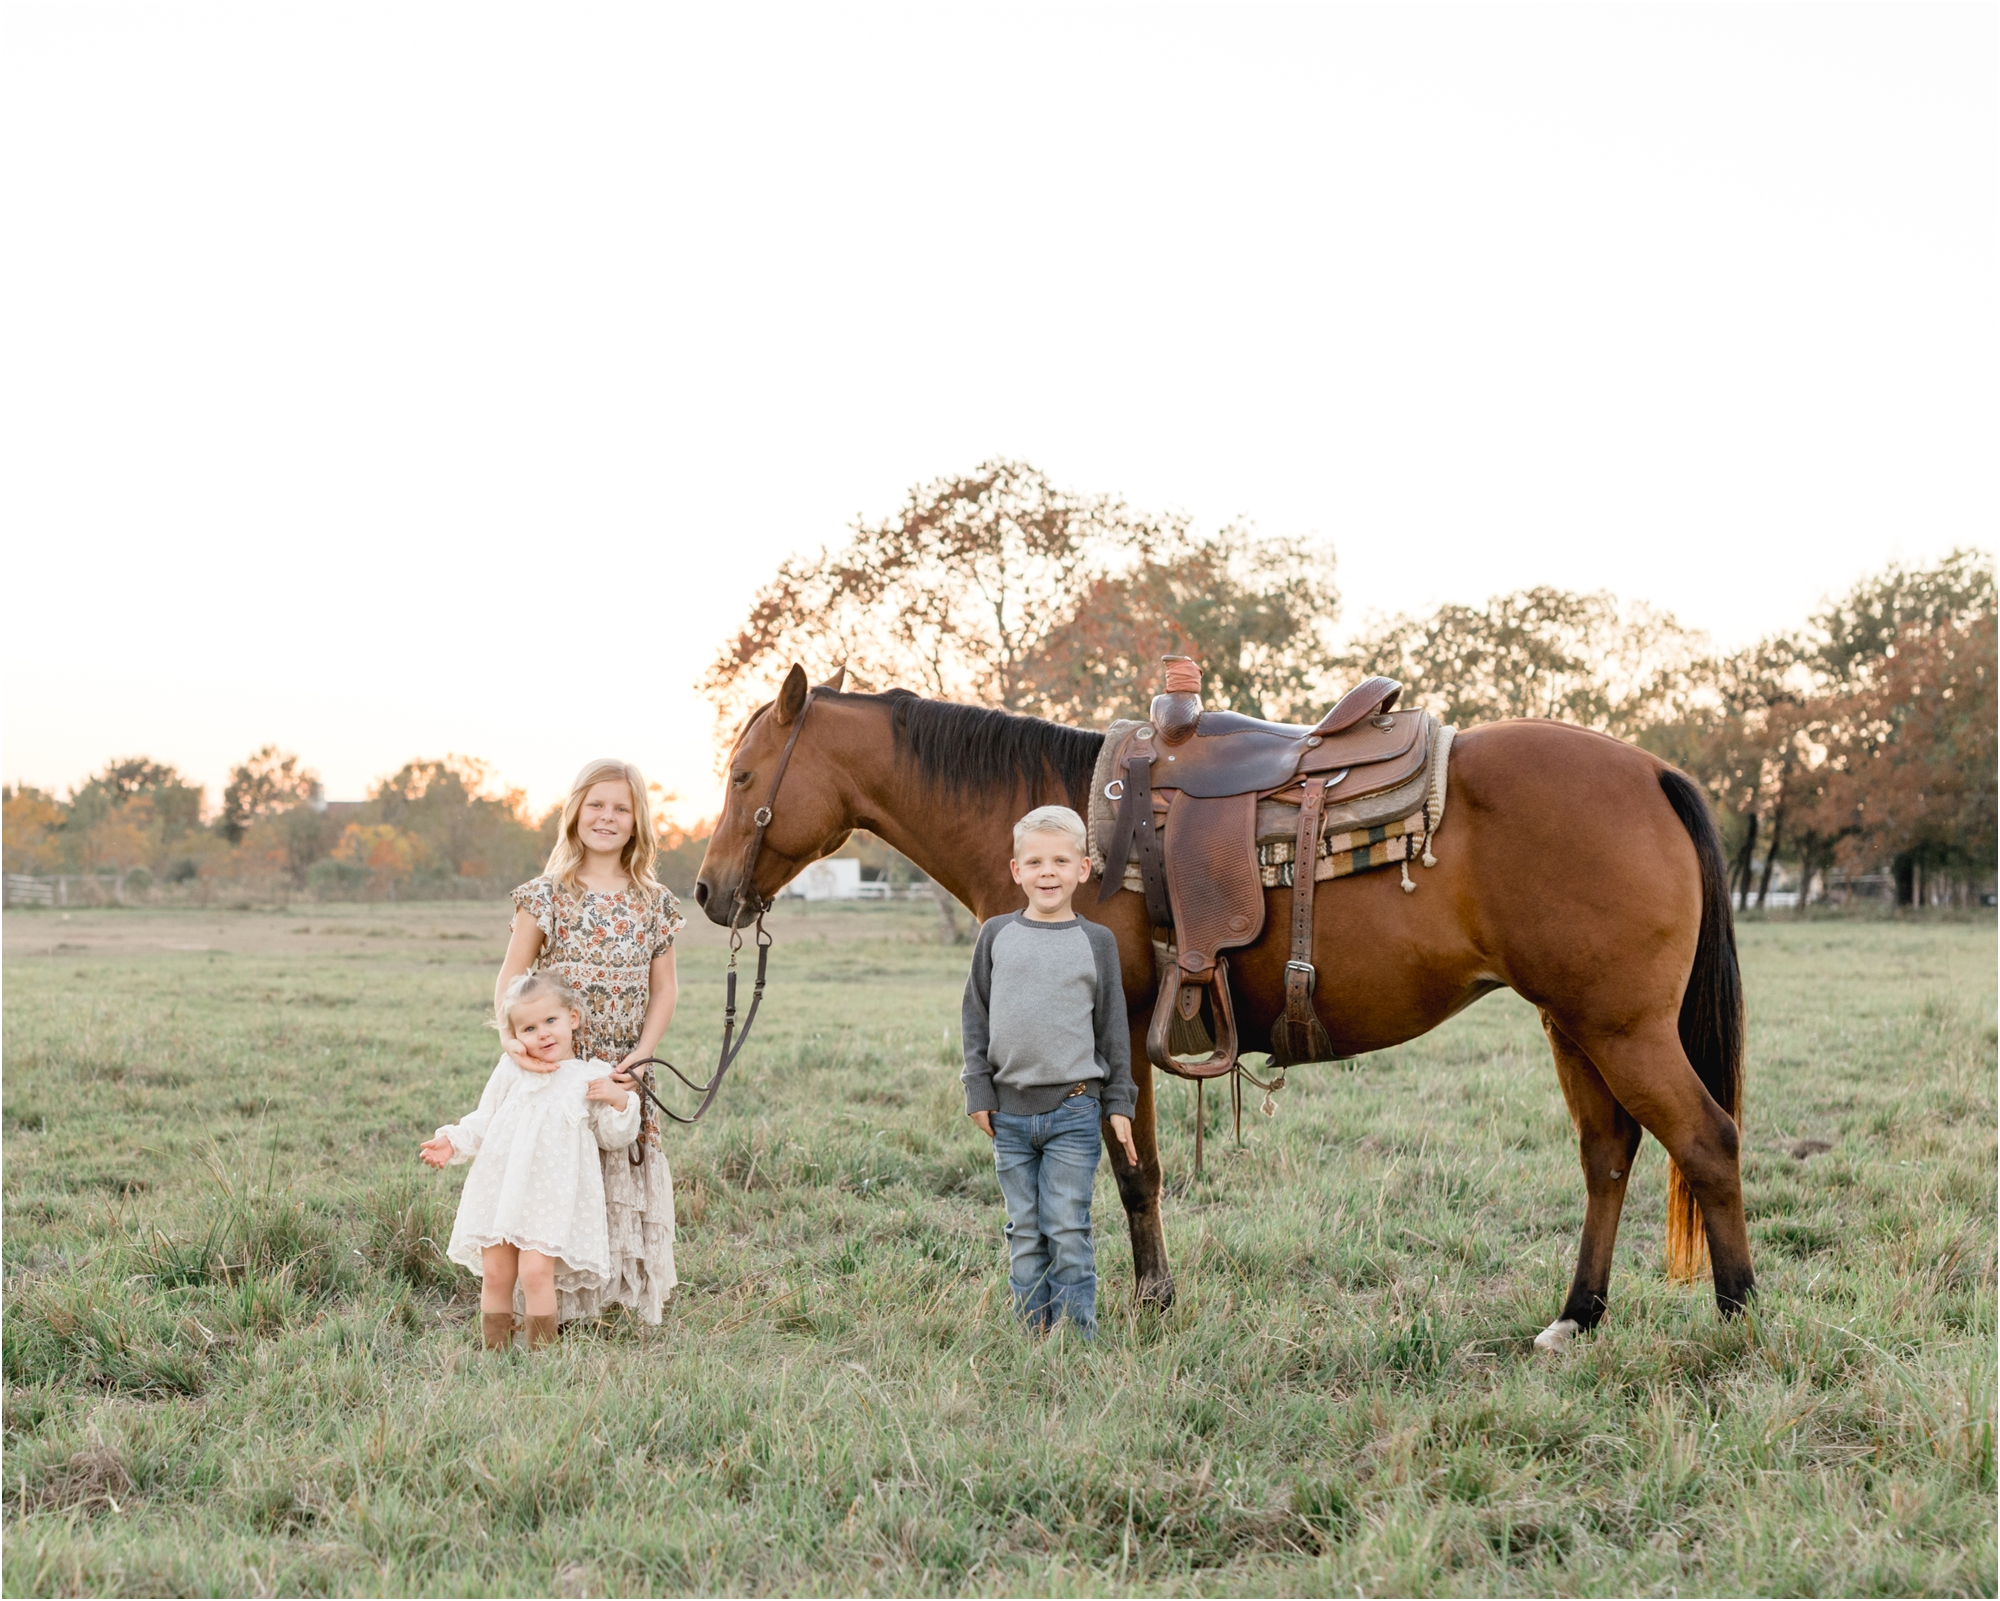 Portrait of three children with horse on private property by Katy family photographer, Lifetime of Clicks Photography.